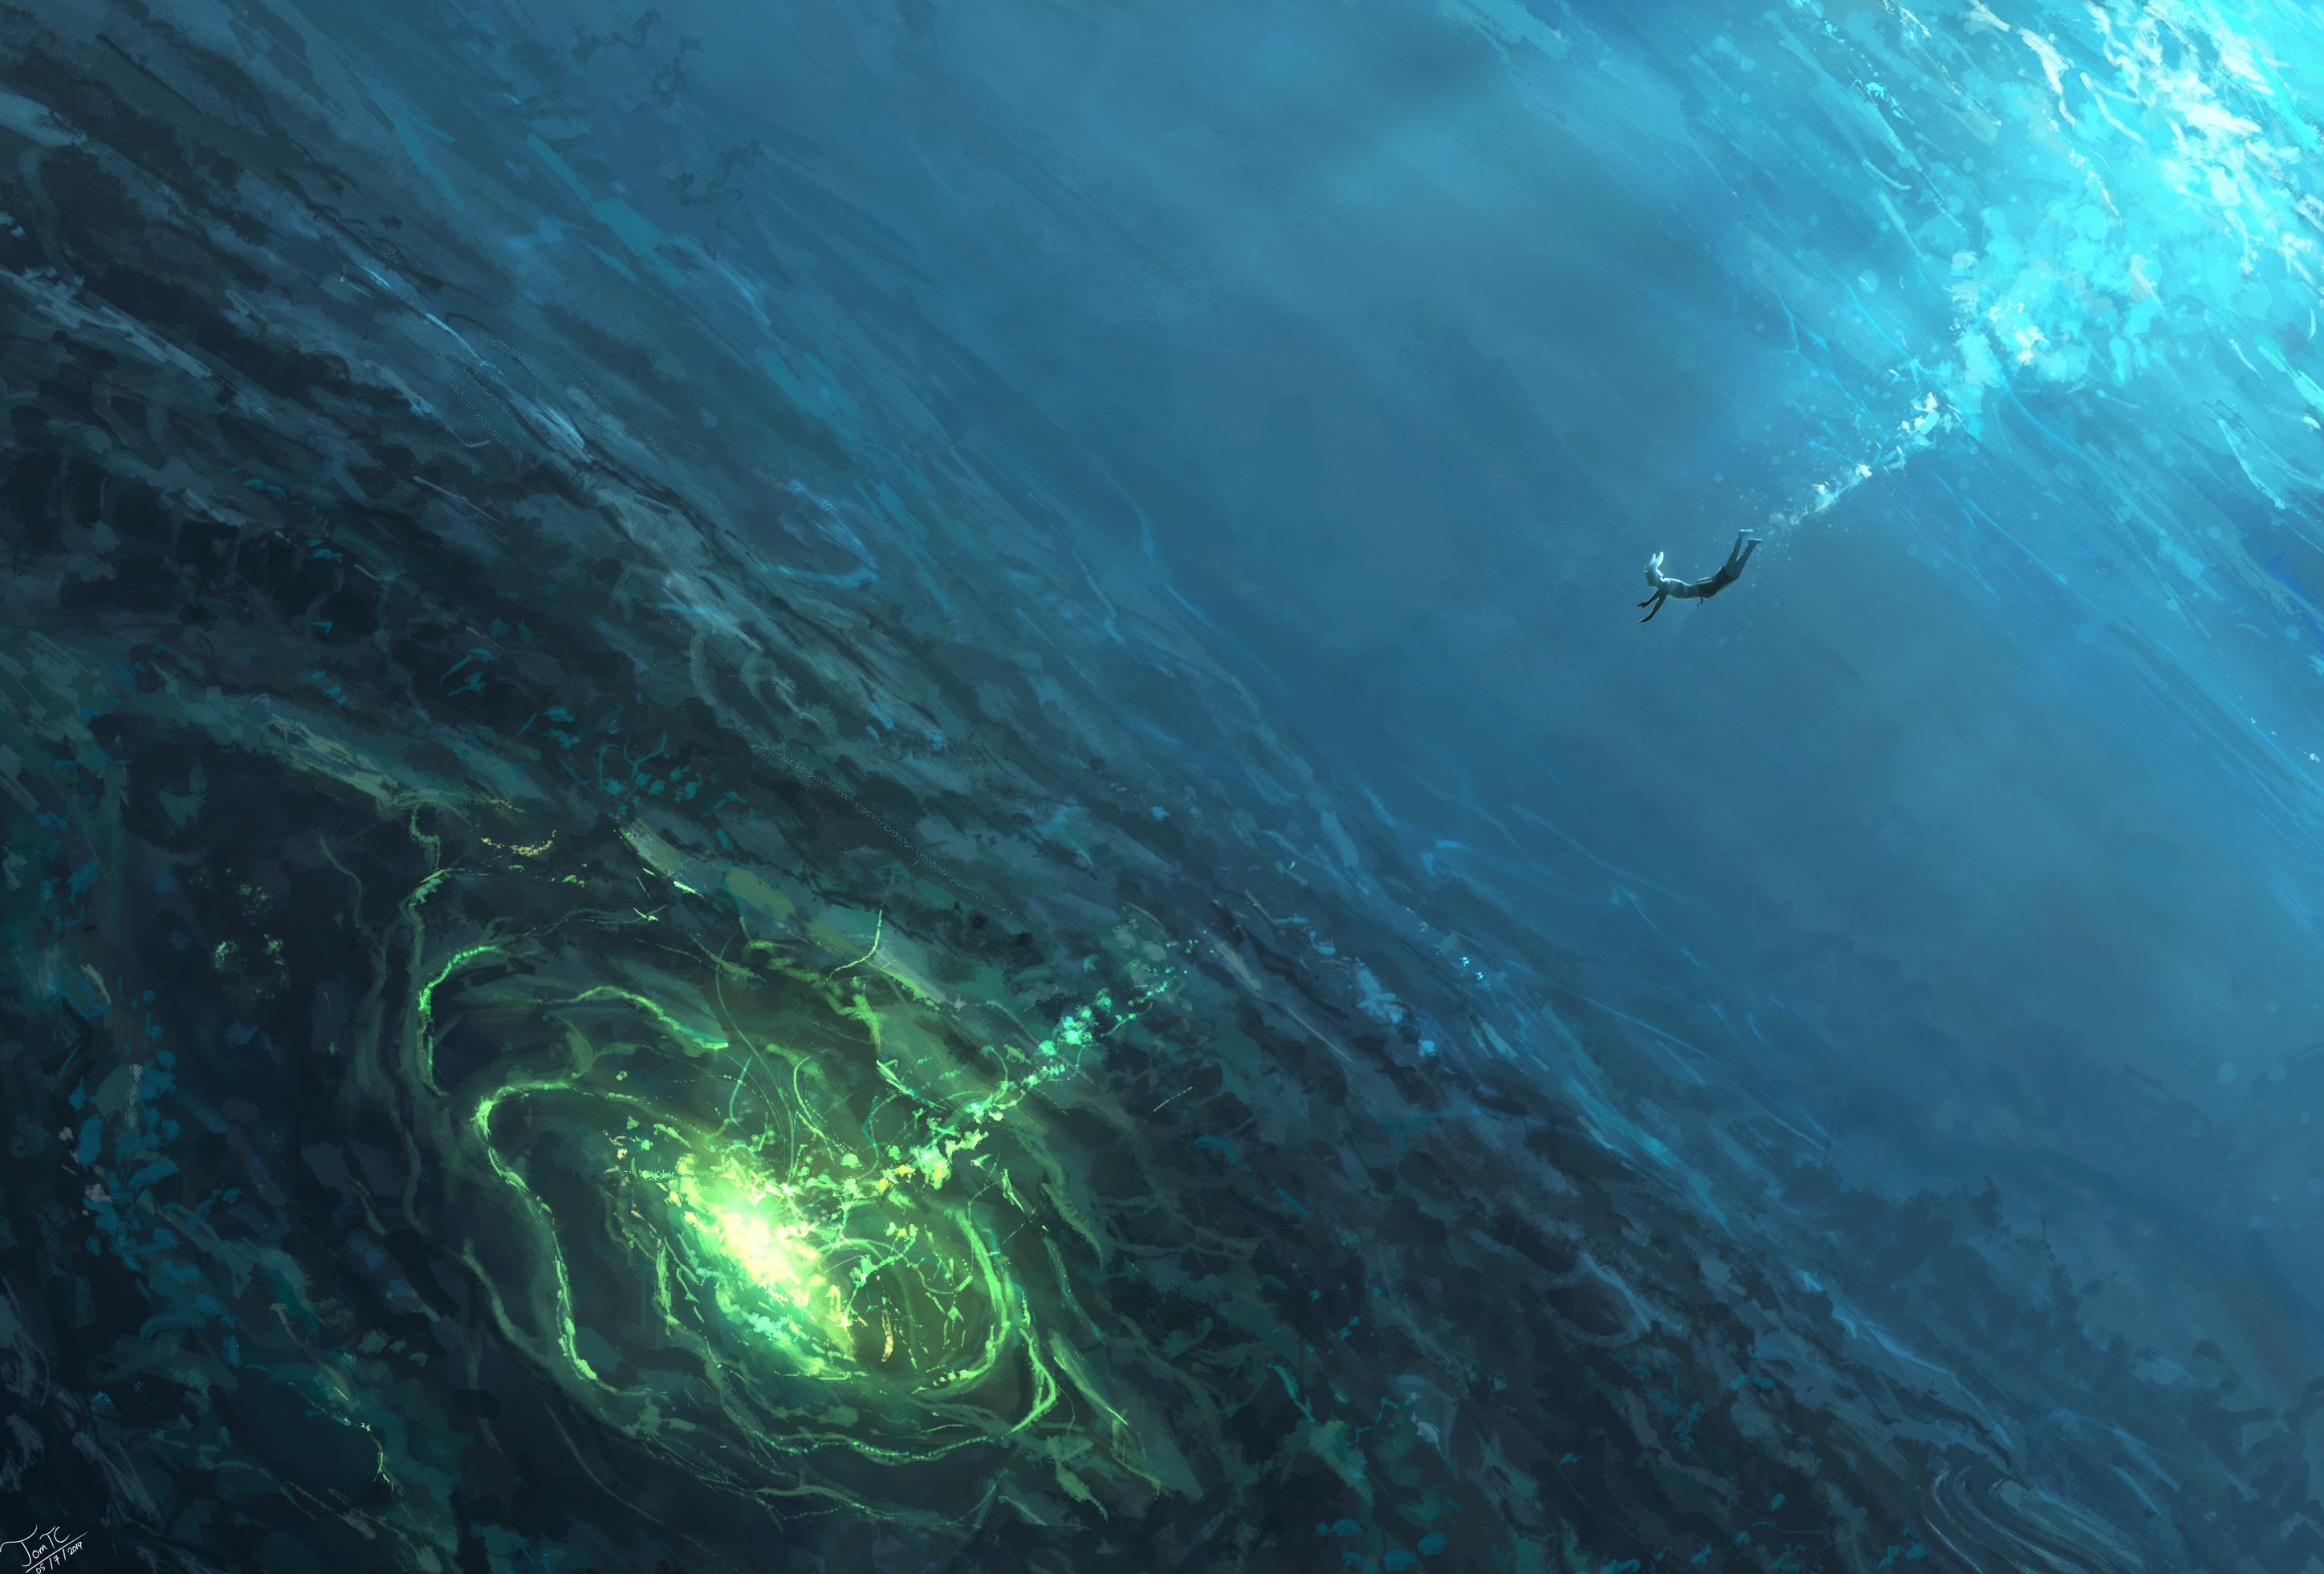 General 2895x1961 digital digital art artwork fantasy art landscape drawing digital painting rabbits water underwater sea blue green abyss diving deep sea